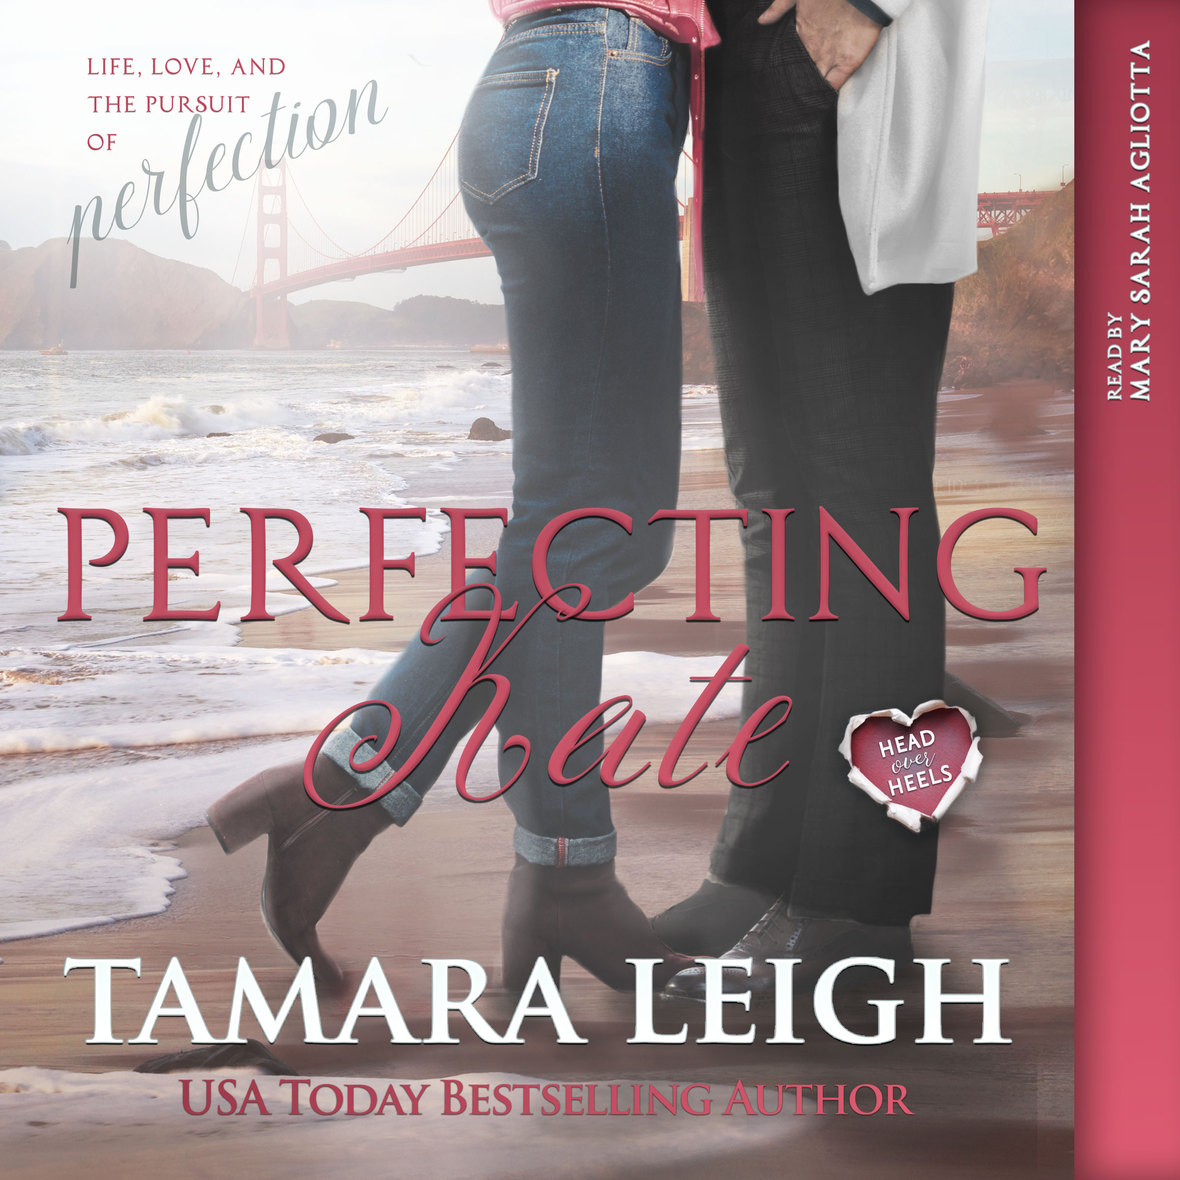 CLBD2018 Tamara Leigh HOH 02 PerfectingKate AUDIO FINAL LOW